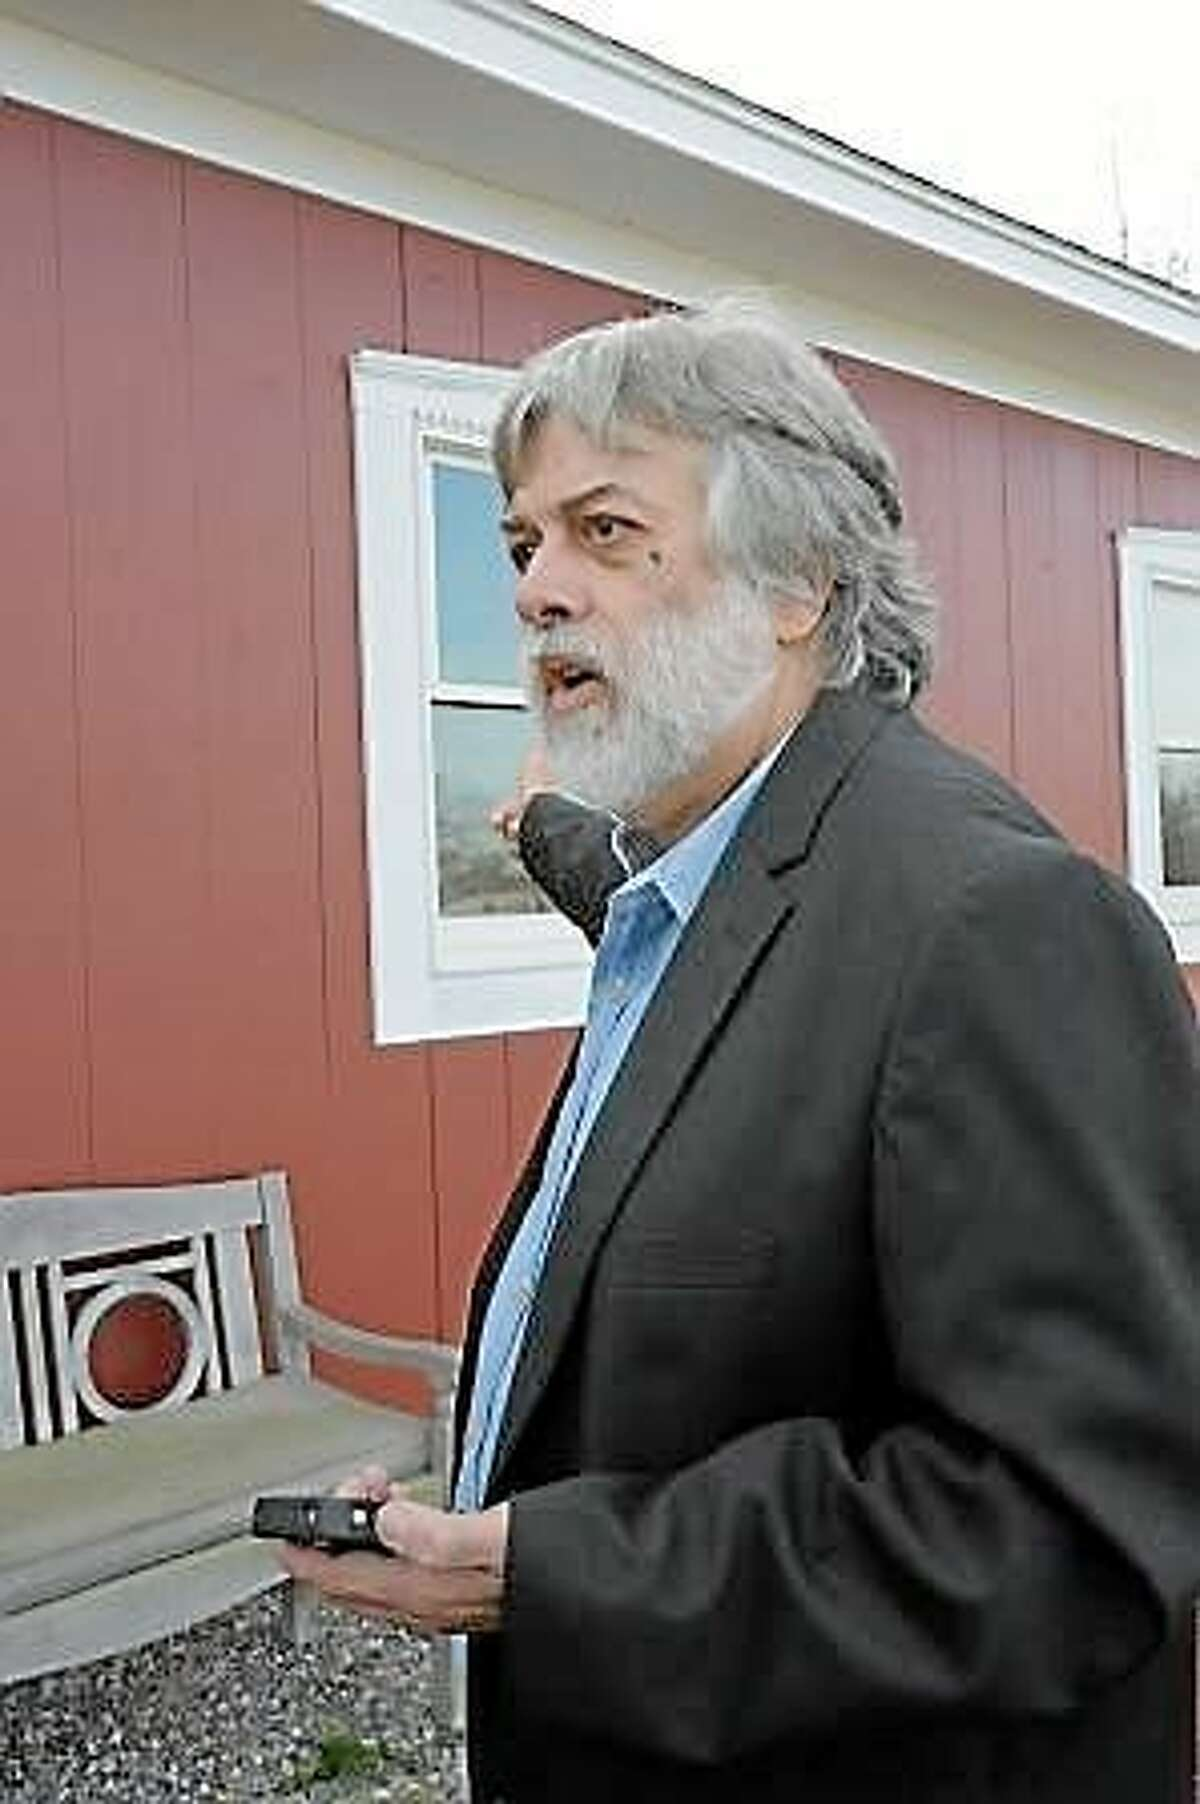 Laurie Gaboardi ¬ Frederick Acker at the Bethlehem barn following the confiscation of his dogs.